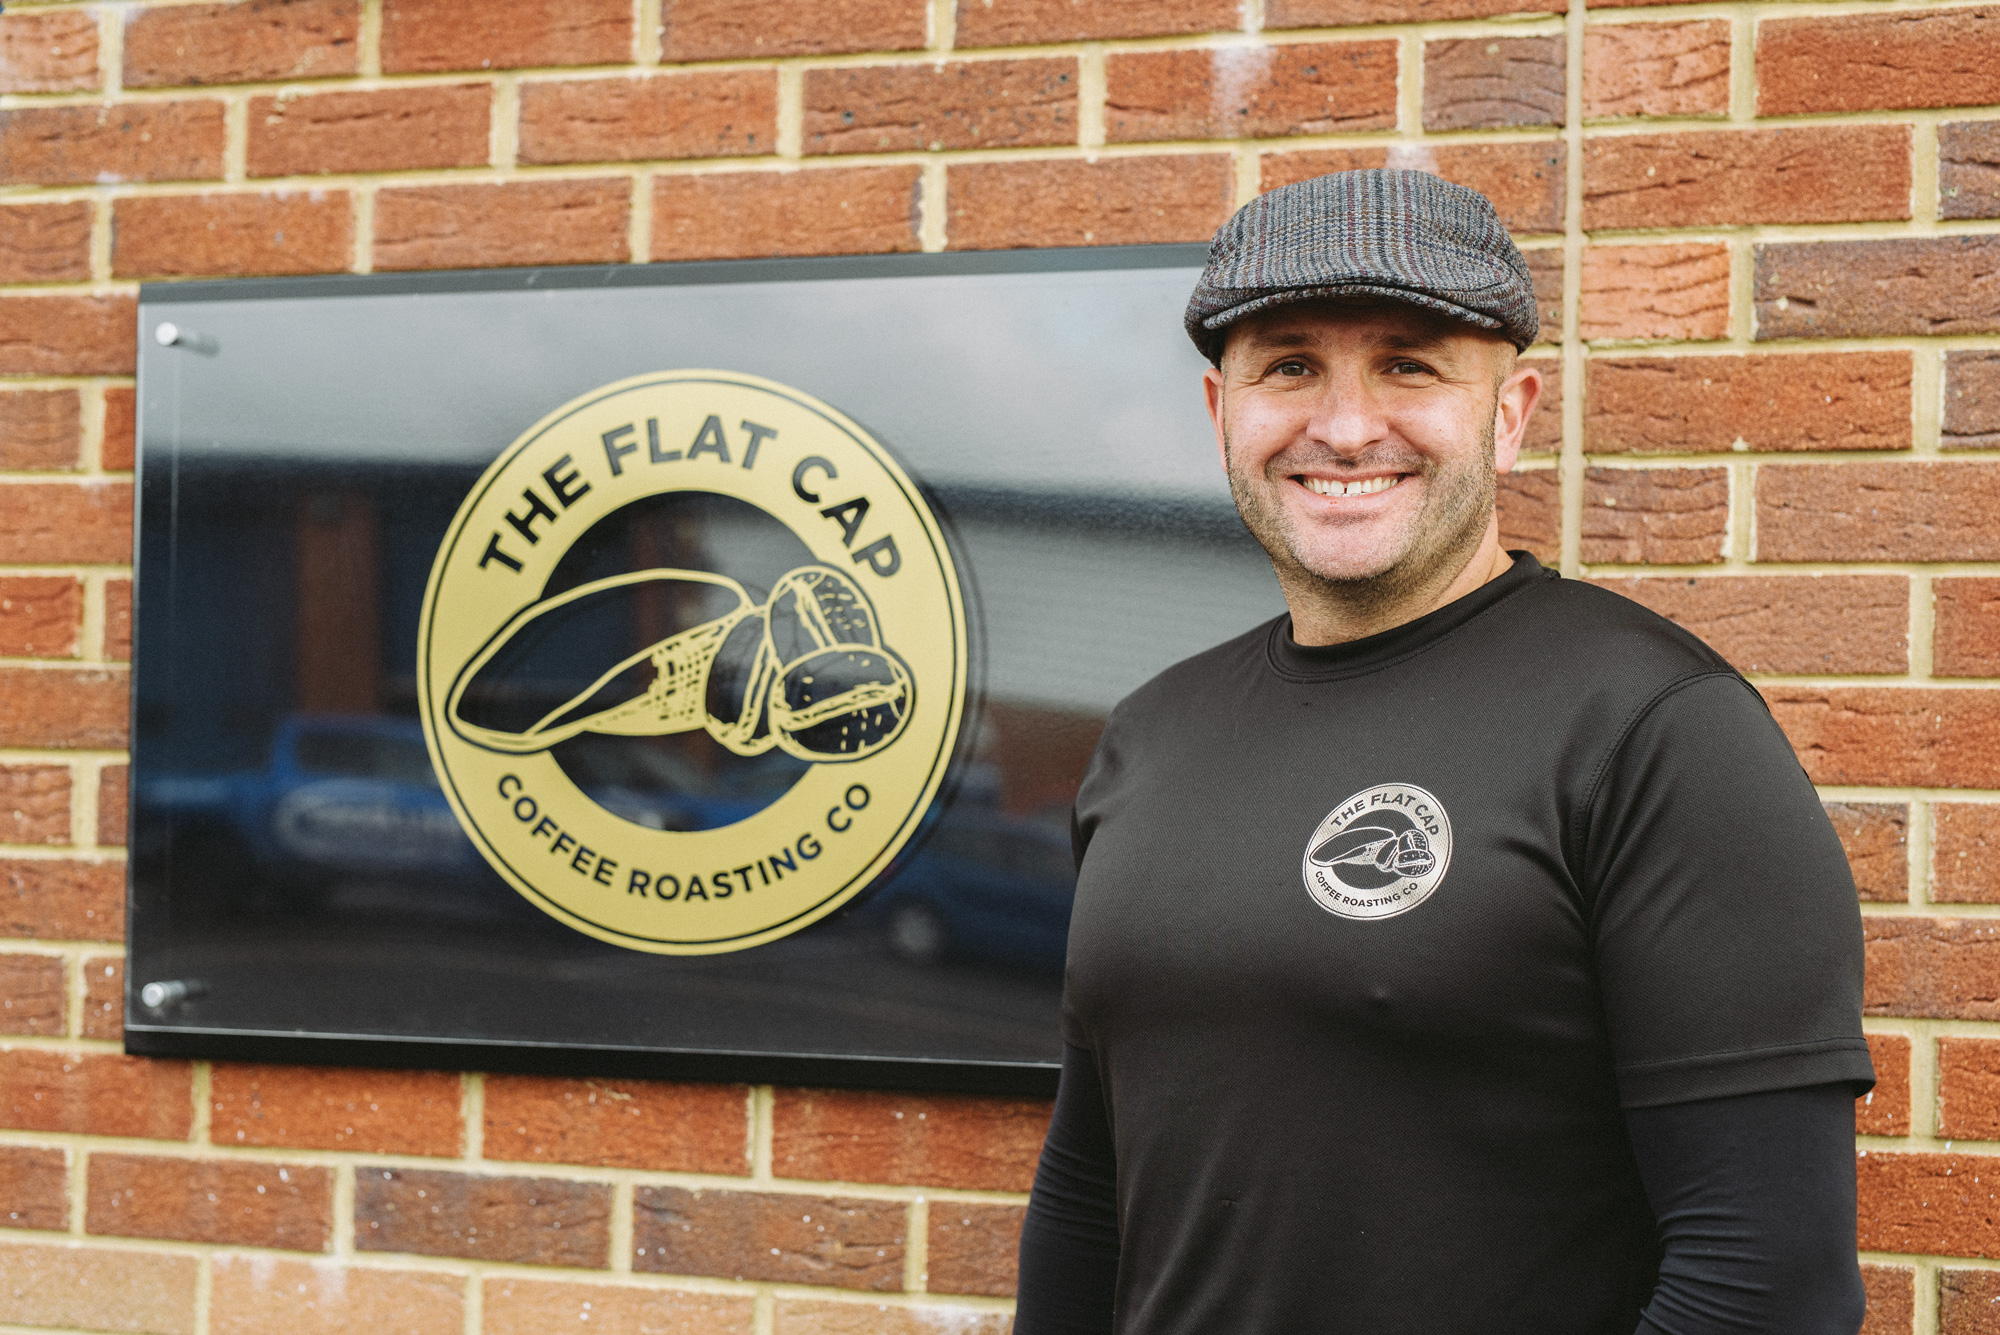 Mark, founder of Flat Cap Coffee Roasting Co. stood next to a Flat Cap Coffee sign on a wall